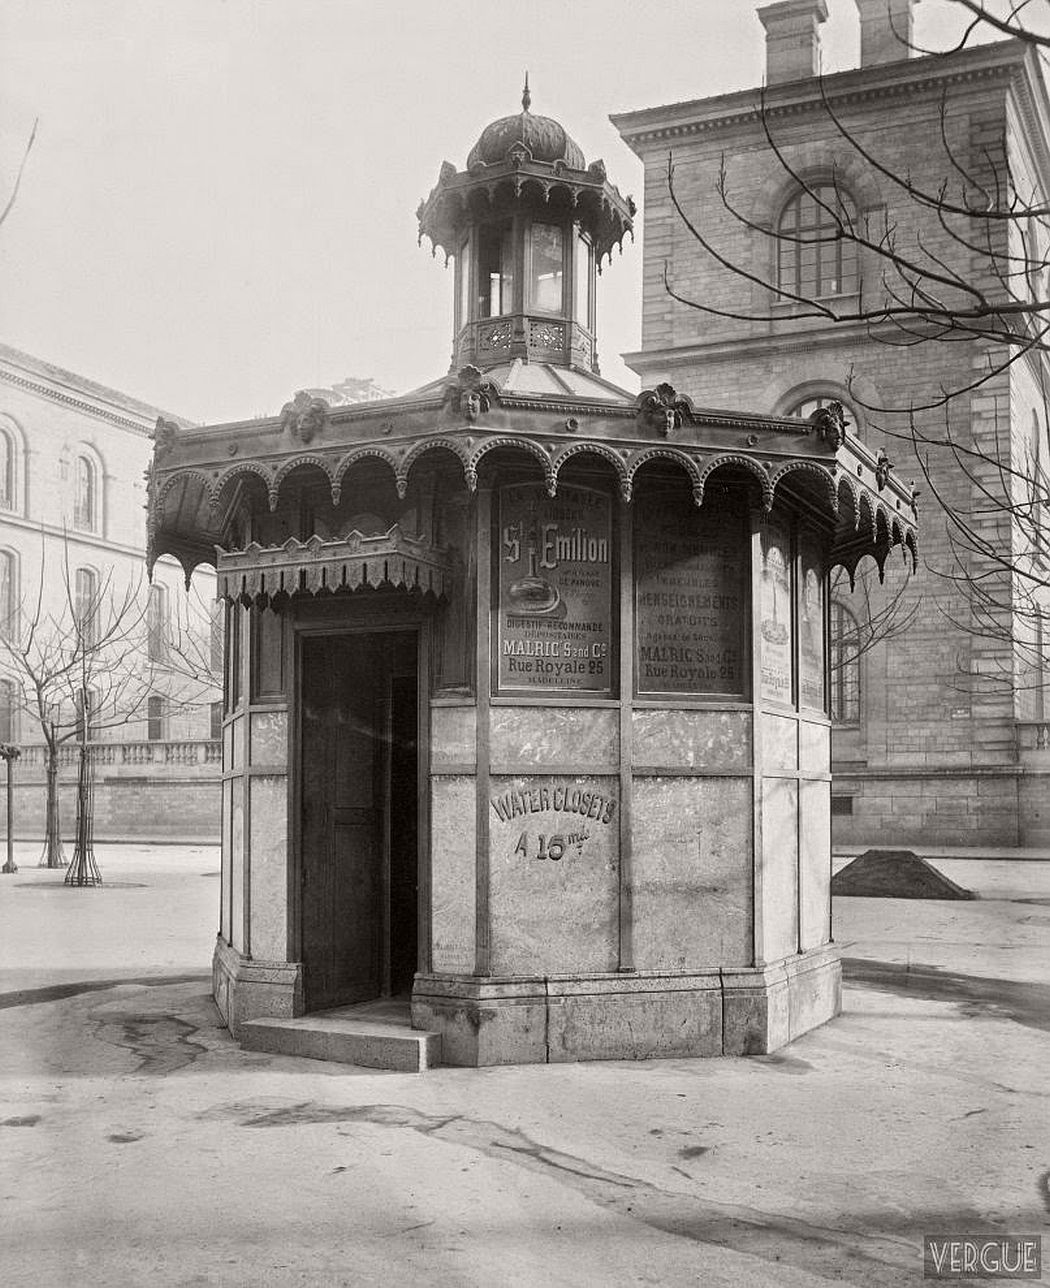 vintage-public-urinals-in-paris-by-charles-marville-19th-century-01